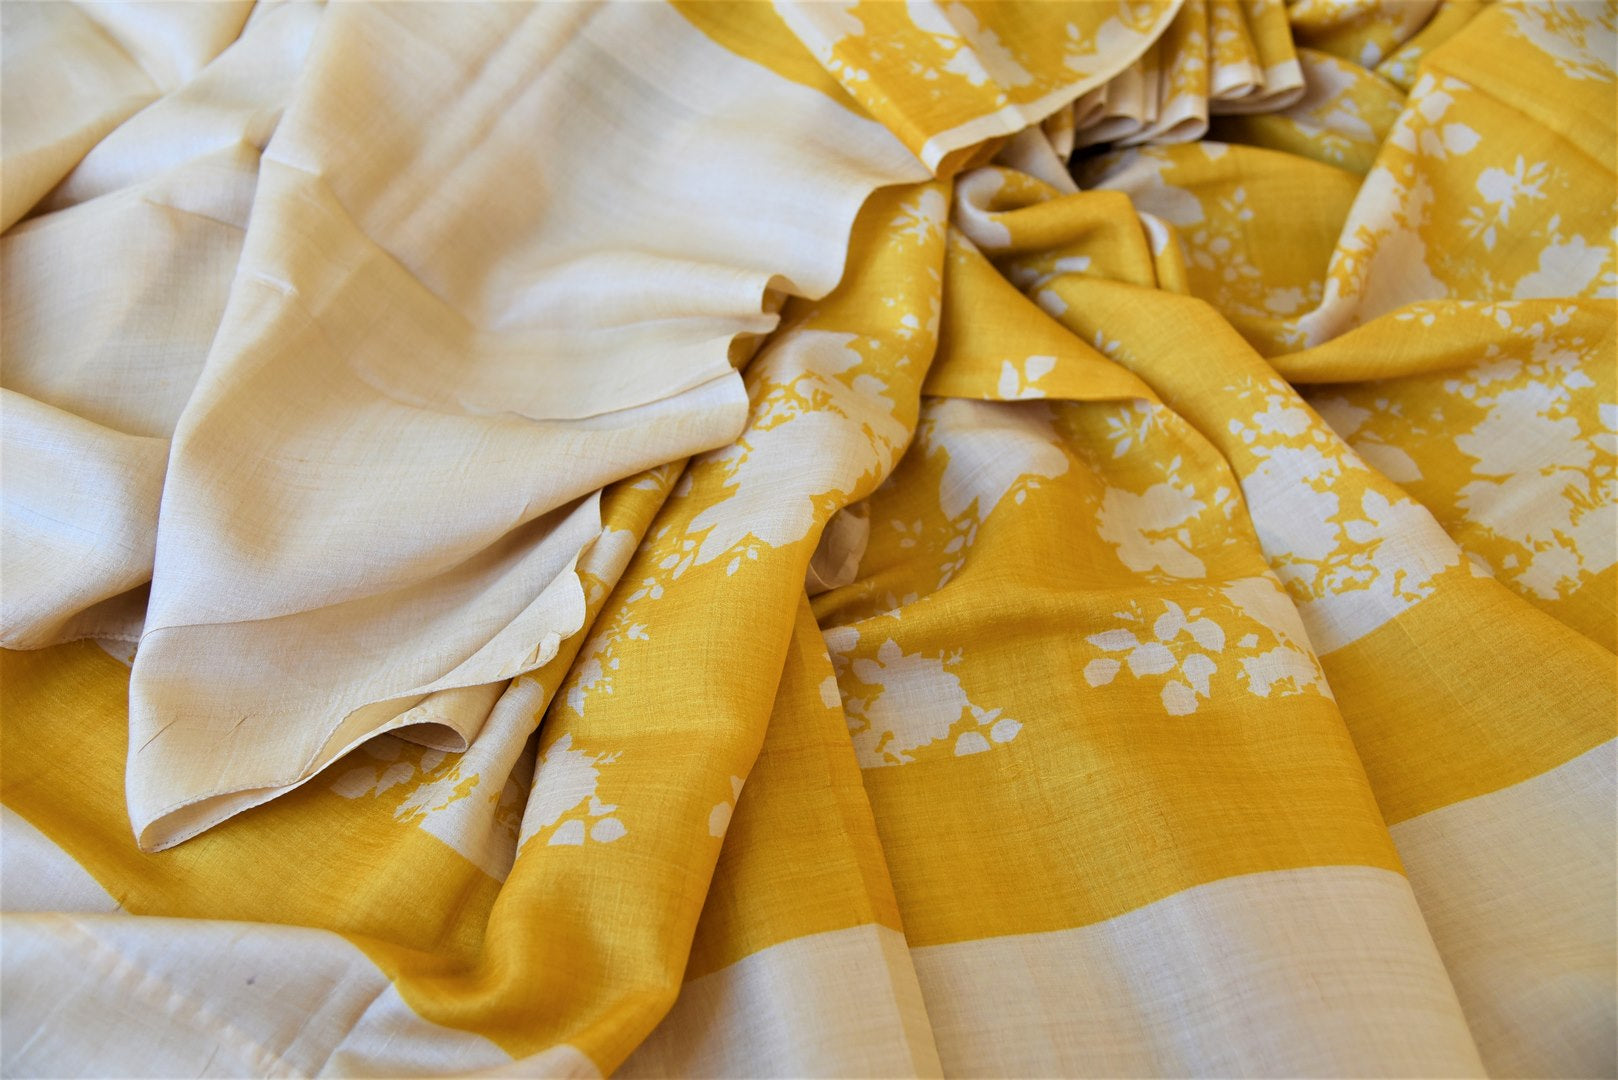 Shop yellow tassar saree online in USA with white floral print. Be the talk of the occasions in exquisite tassar sarees, handwoven silk saris from Pure Elegance Indian fashion store in USA. -details